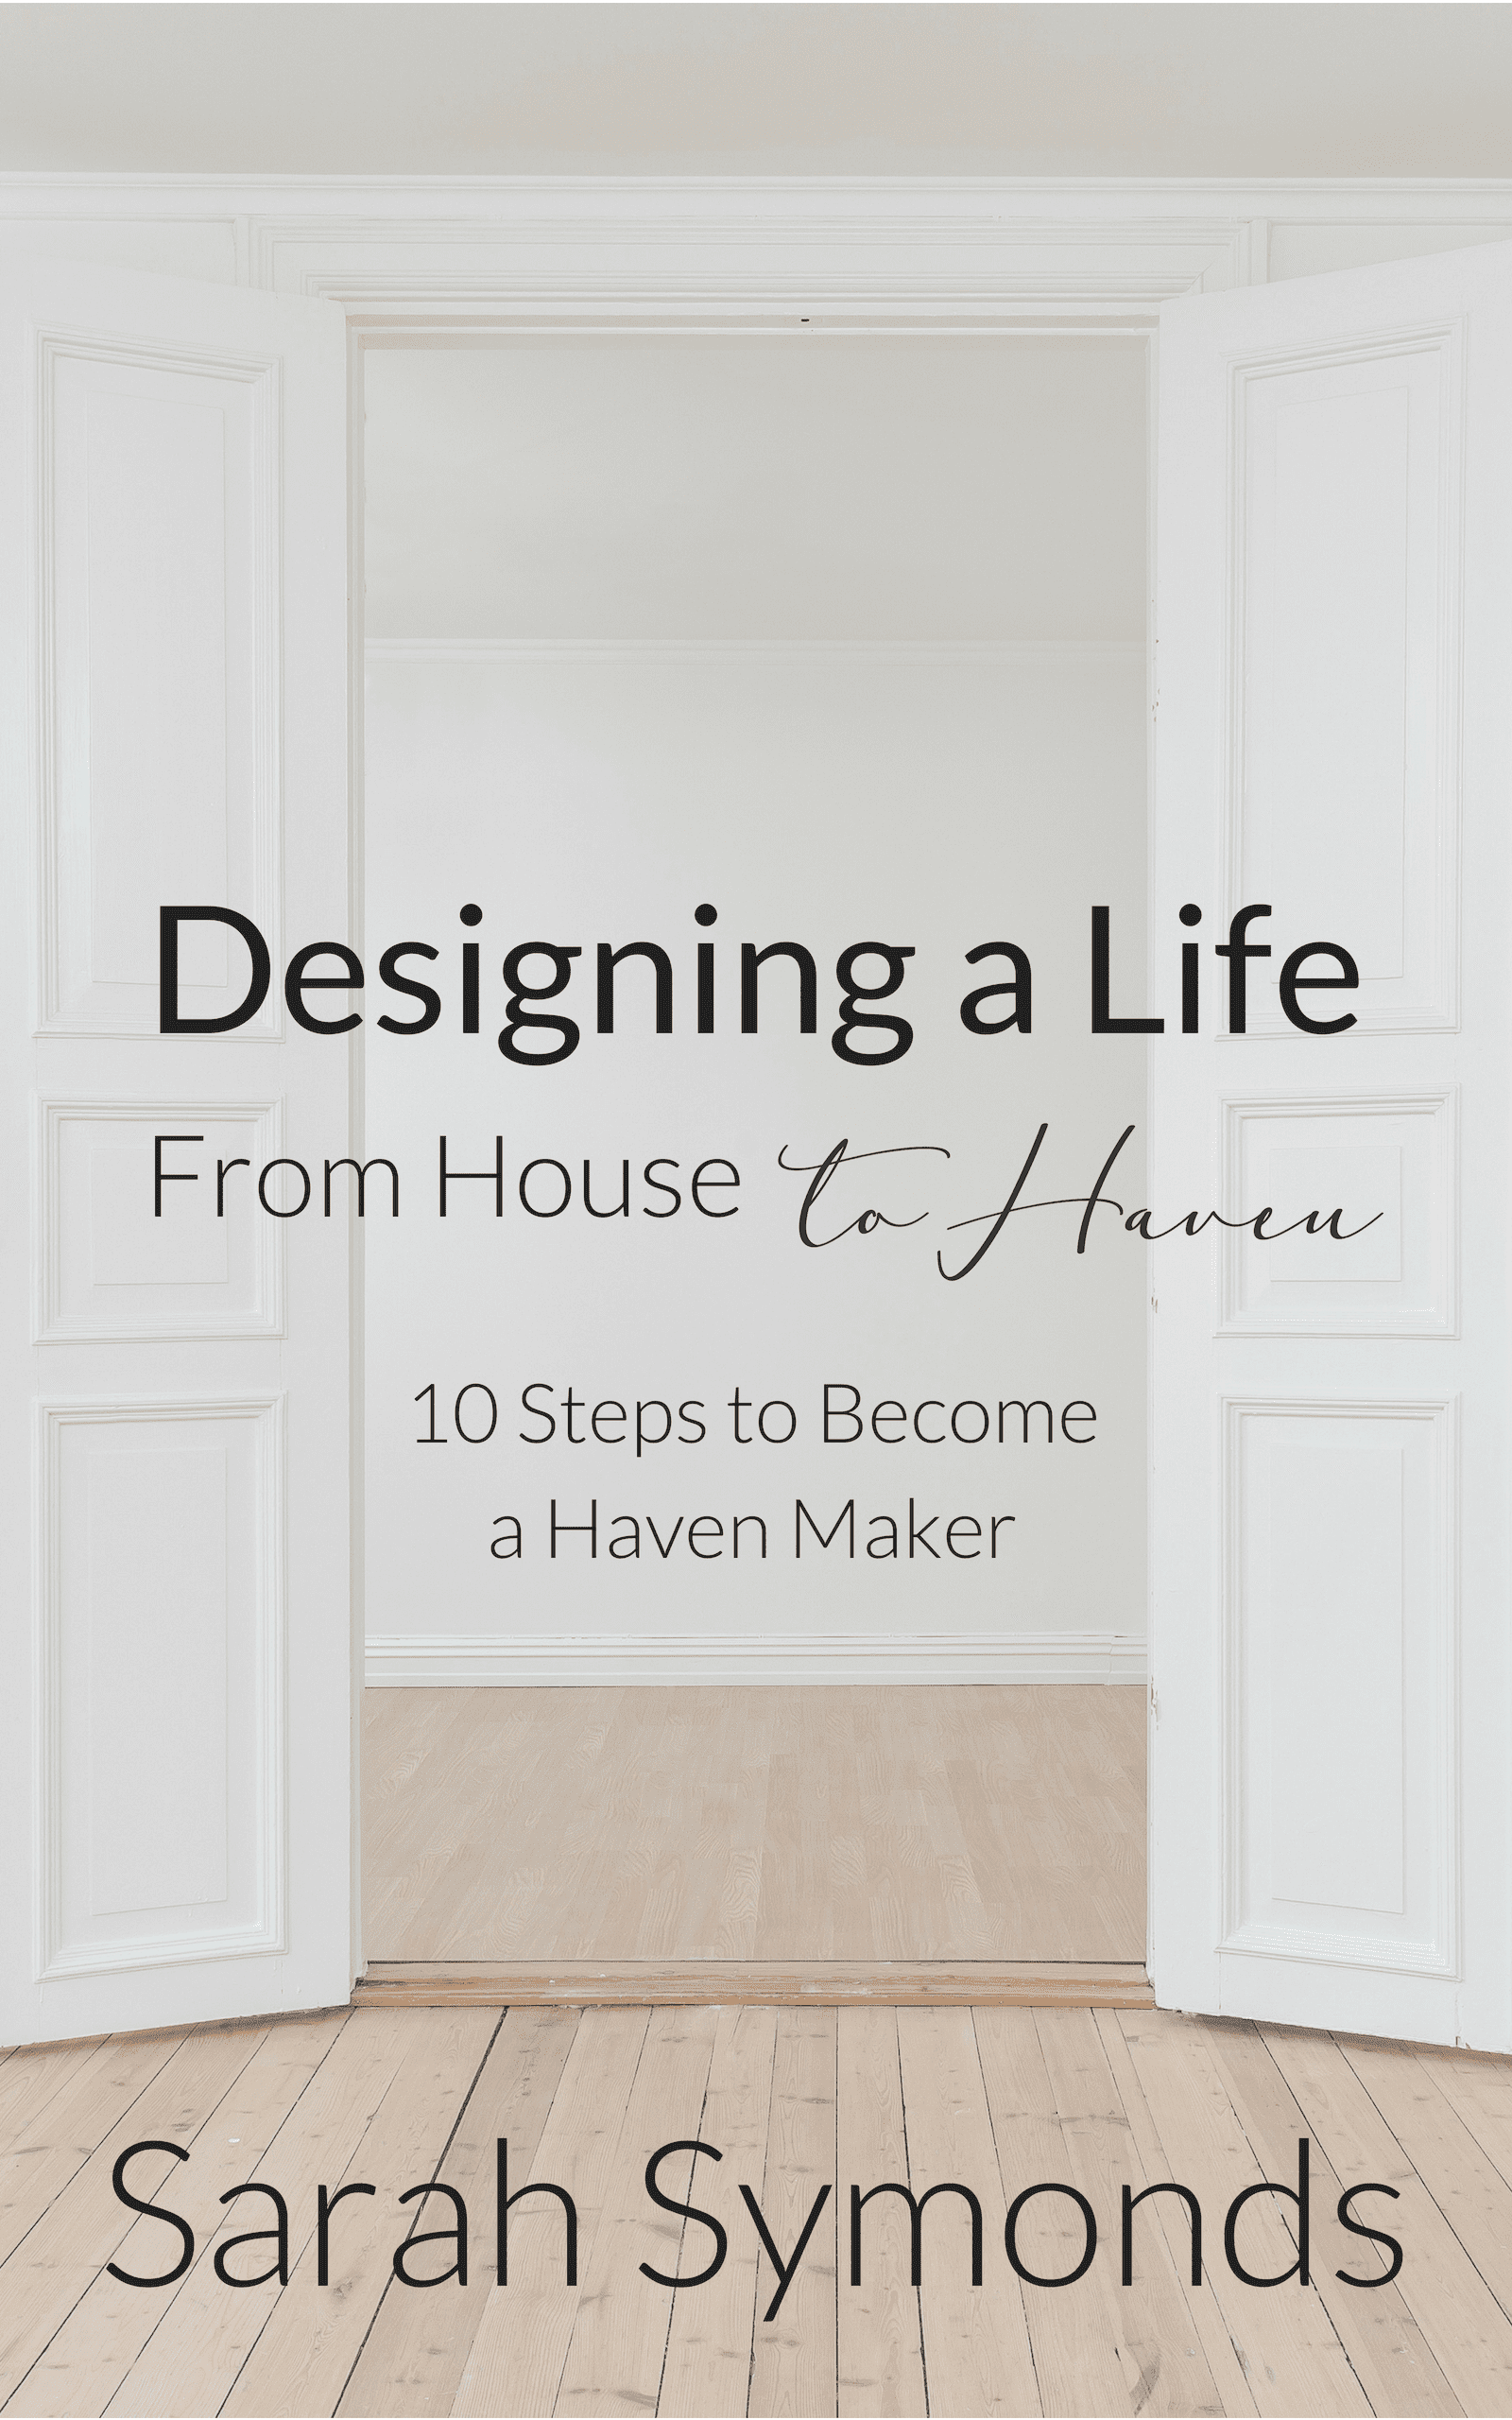 What if you could transform your house into a haven in 10 simple steps? Learn how to become a haven maker today.